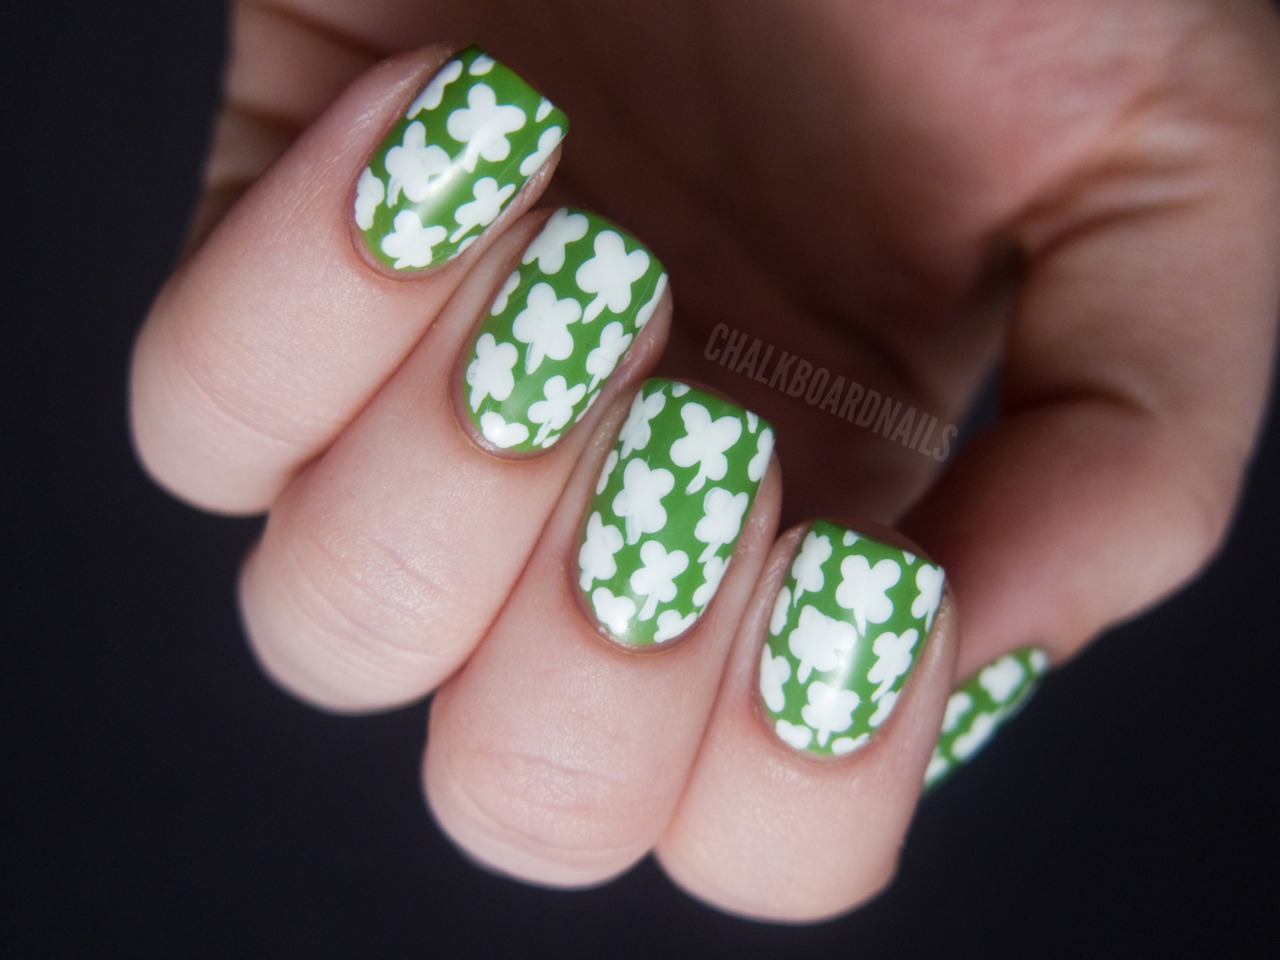 So, so lucky! Orly FreshWhite shamrocks freehanded on with a dotting tool and small nail art brush